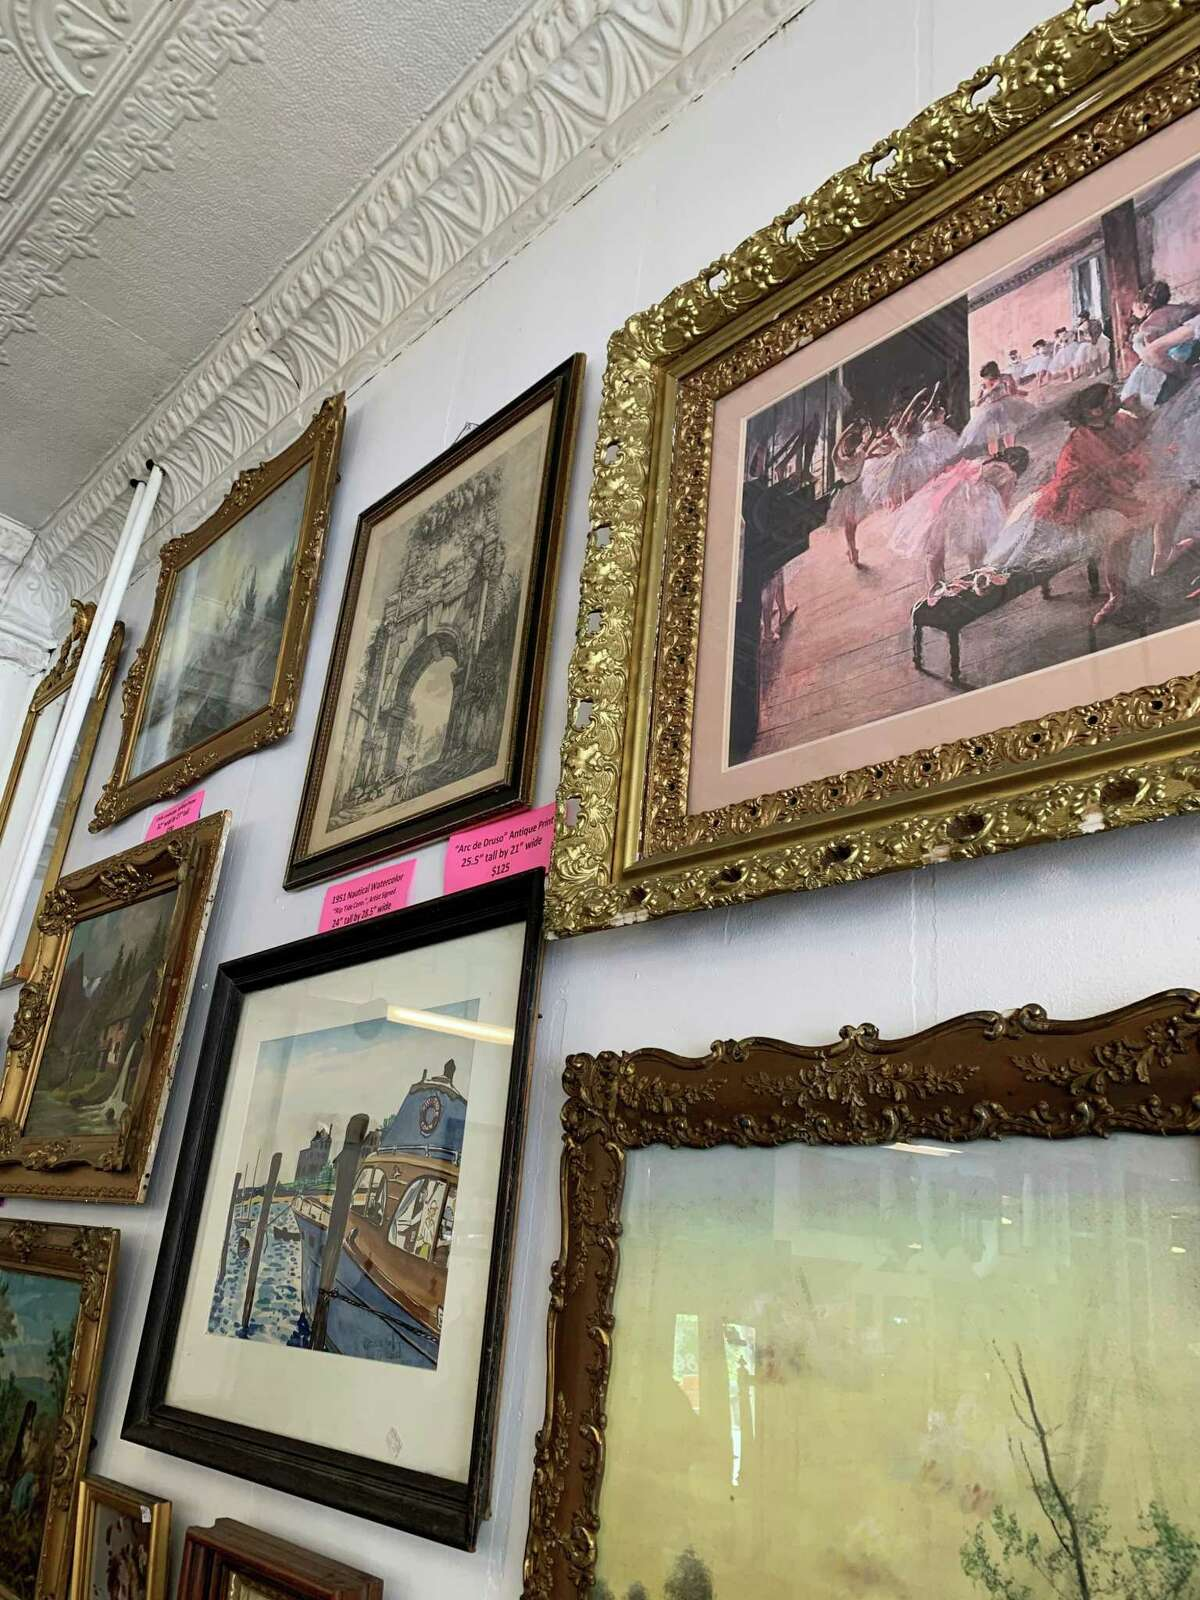 Villa's Corner Gallery reopened Sept. 18. The shop on Route 44 in Winsted offers a wide variety of collectibles, furniture, wall art, jewelry, sculpture, lawn and garden ornaments and other treasures.